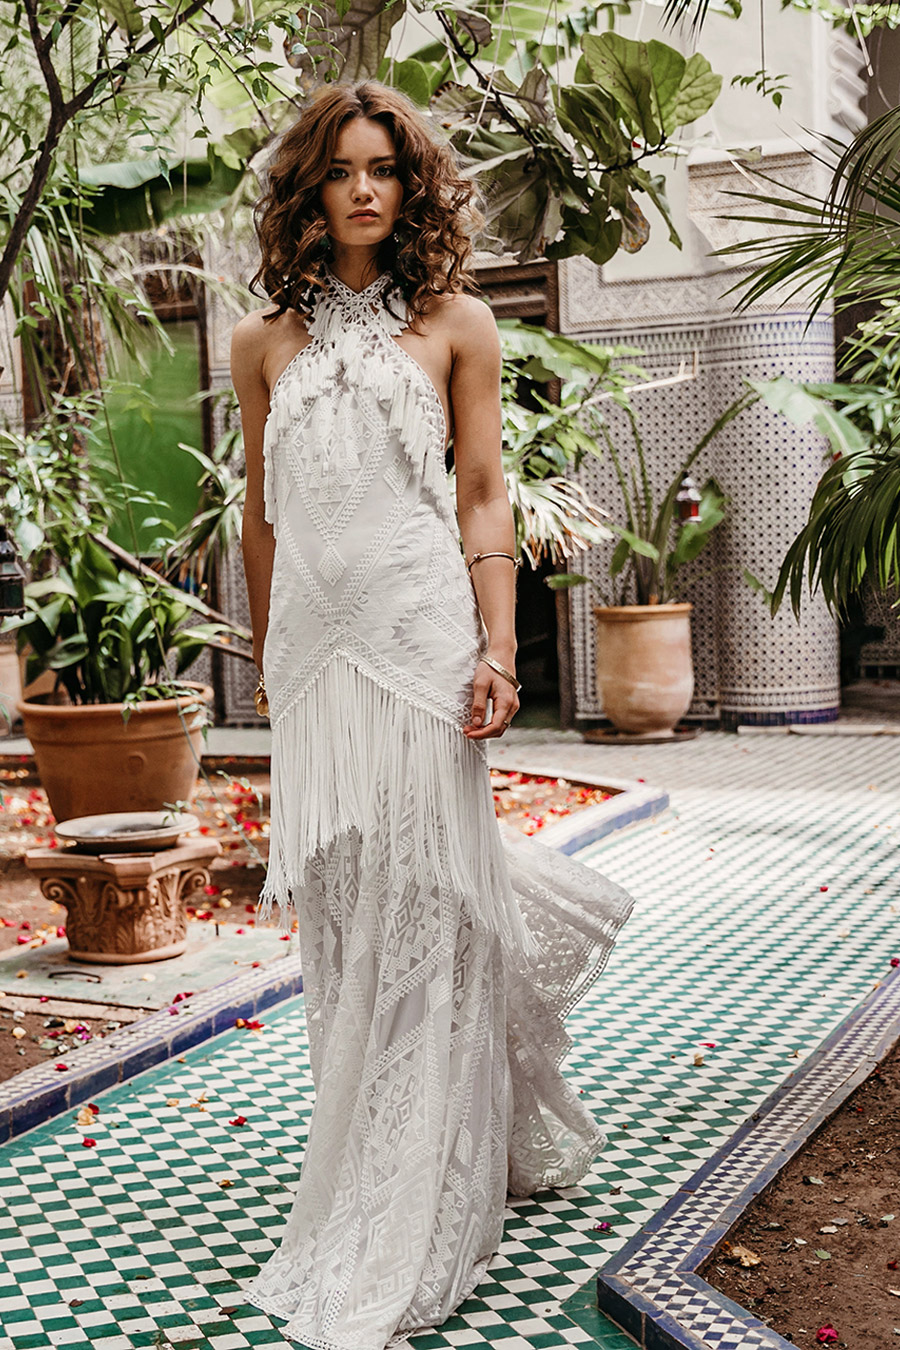 For the bride who beats to her own drum and believes in being her authentic self, Zorah is without a doubt your wedding dress! With its show-stopper qualities and head-turning details, this wedding gown's appeal is nothing short of magical.